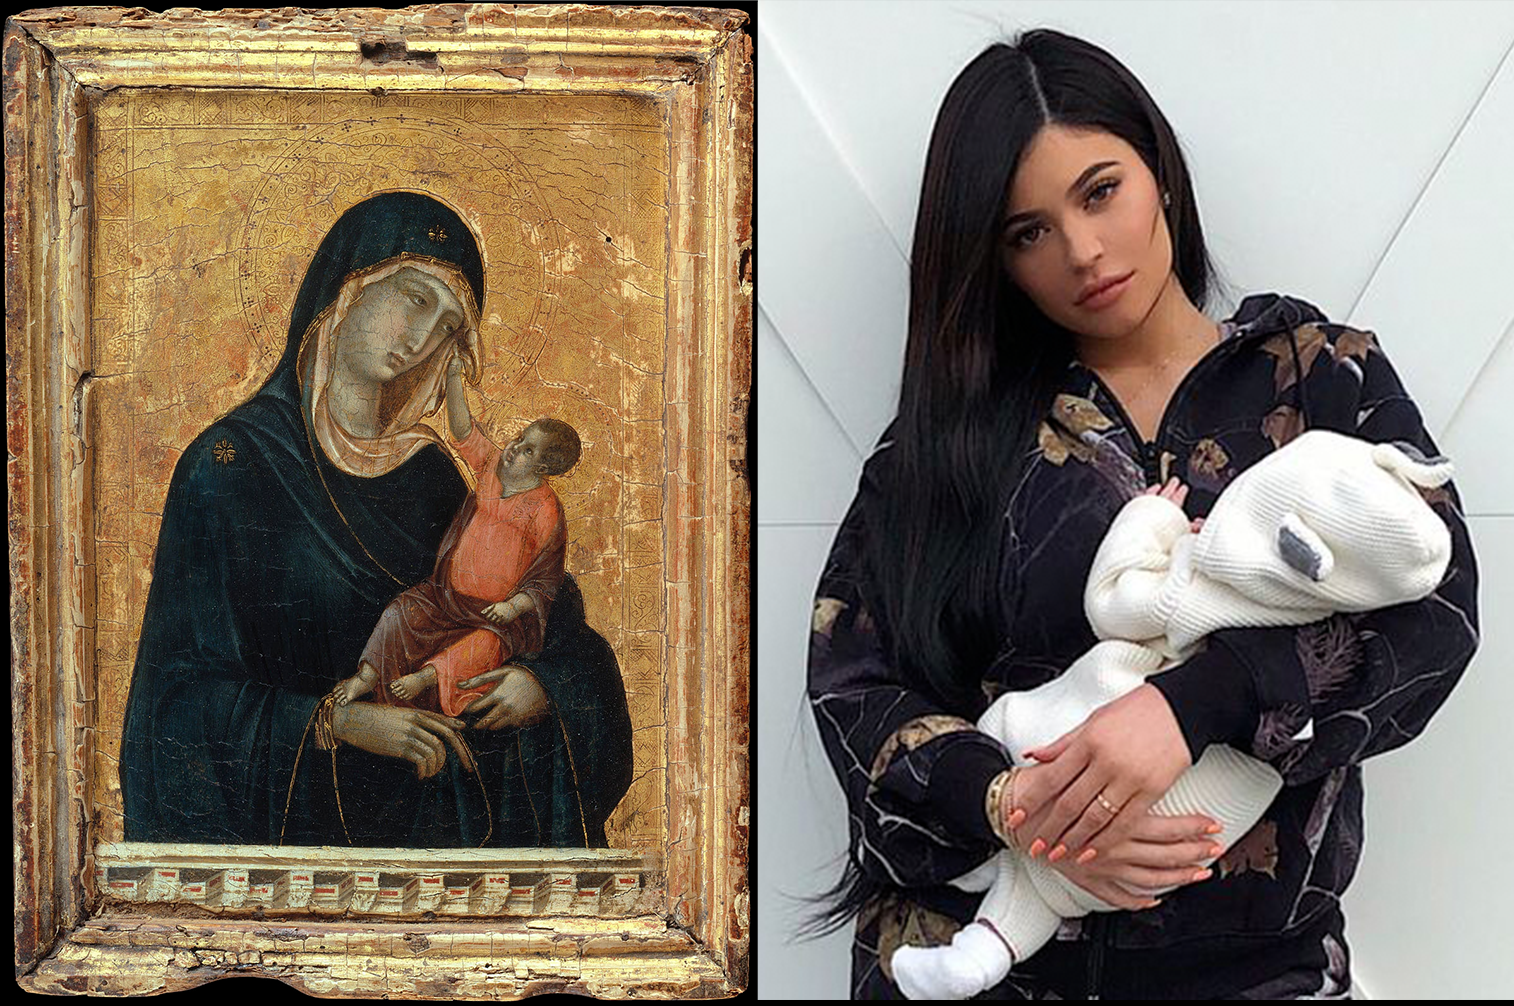 Religion vs. Social Media: From the Virgin Mary to the Vulgar Kylie